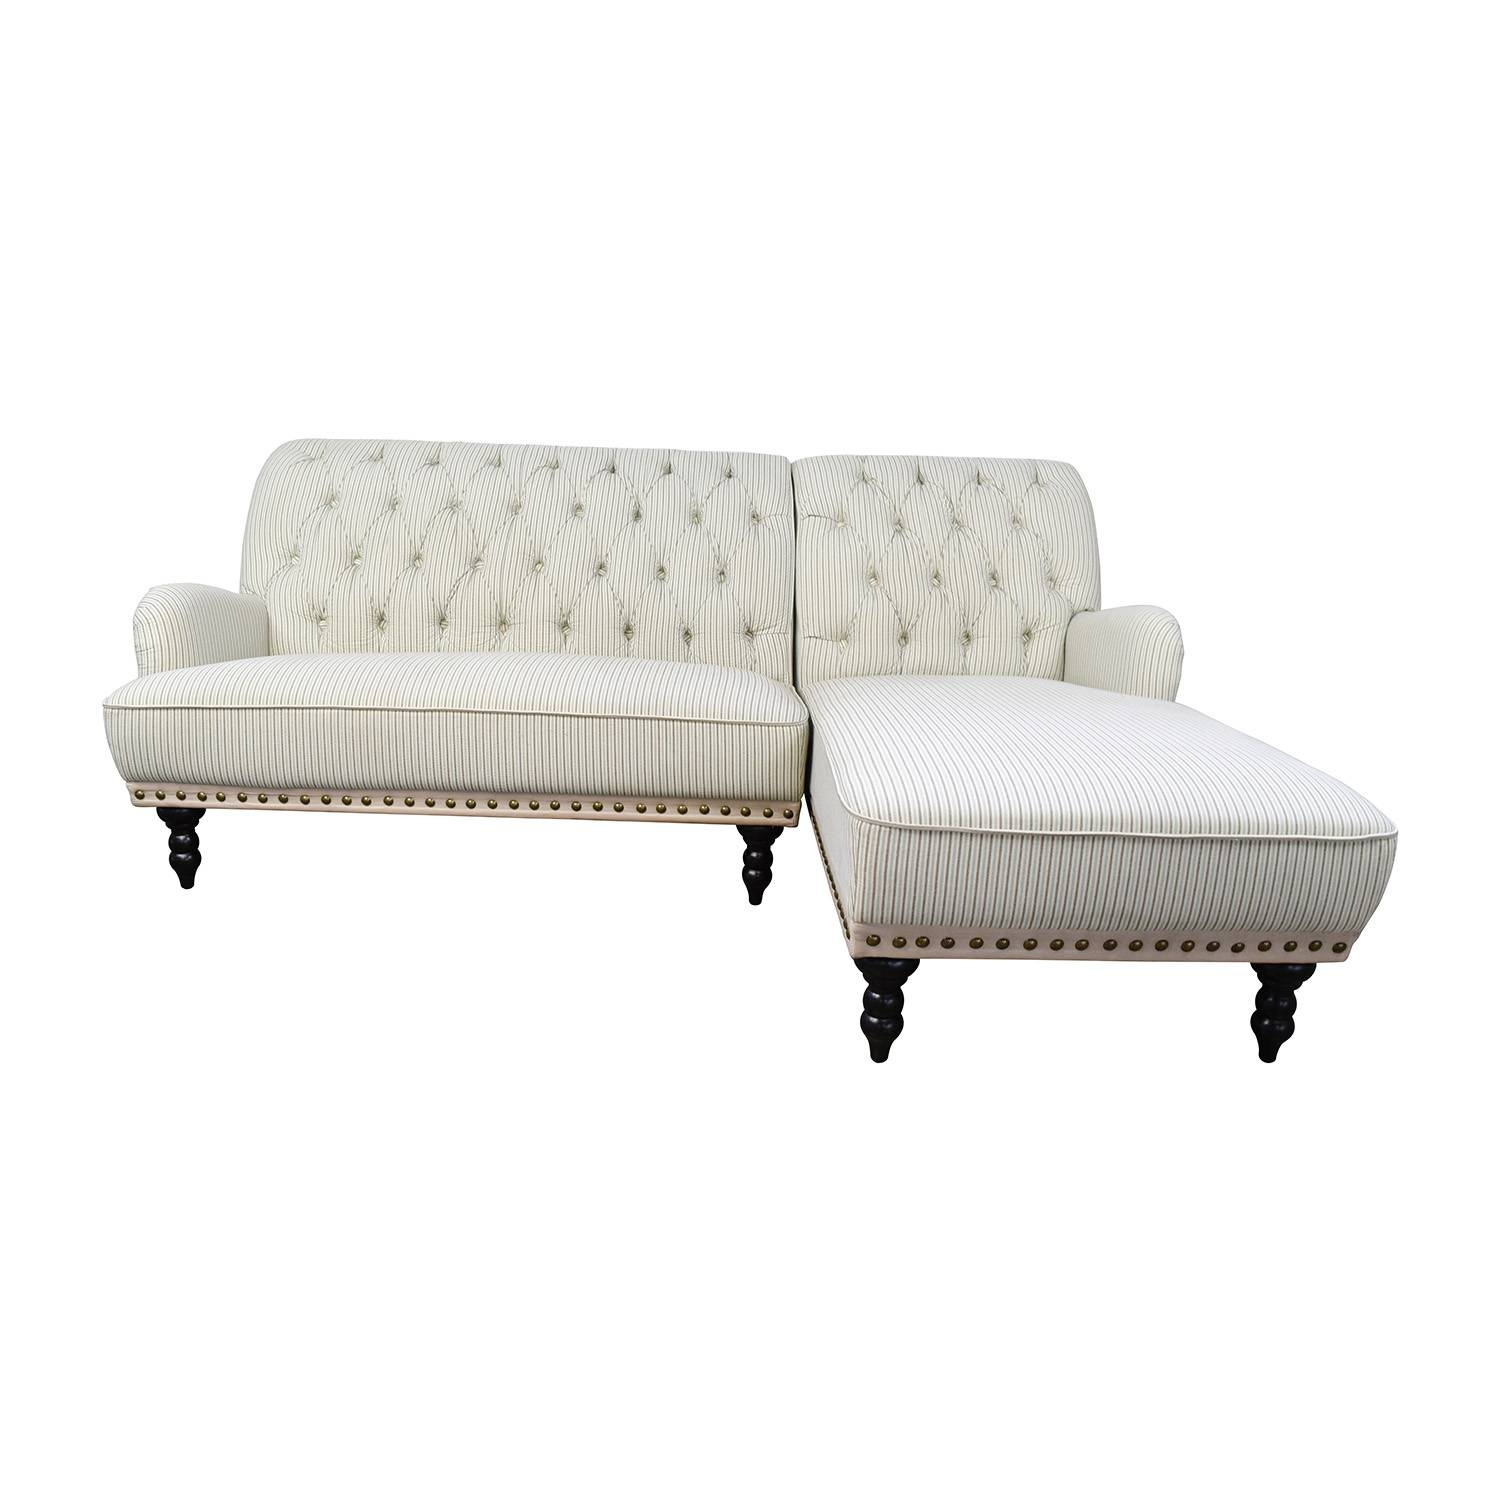 51% Off   Home Decorators Collection Home Decorators Collection With Pier 1 Sofas (Photo 10 of 15)